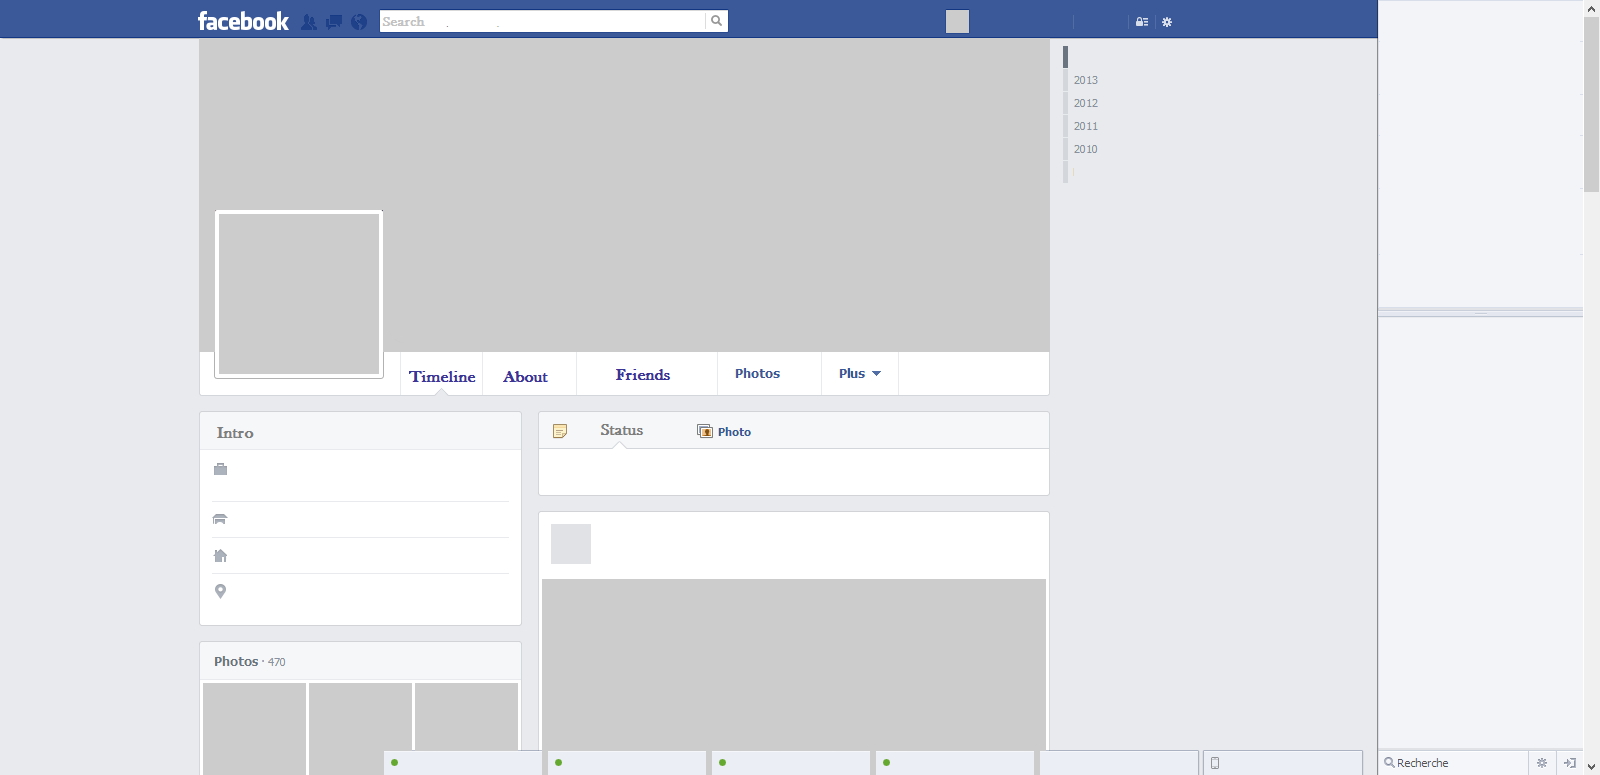 Facebook username page is blank | Files from users |Blank Facebook Timeline Page